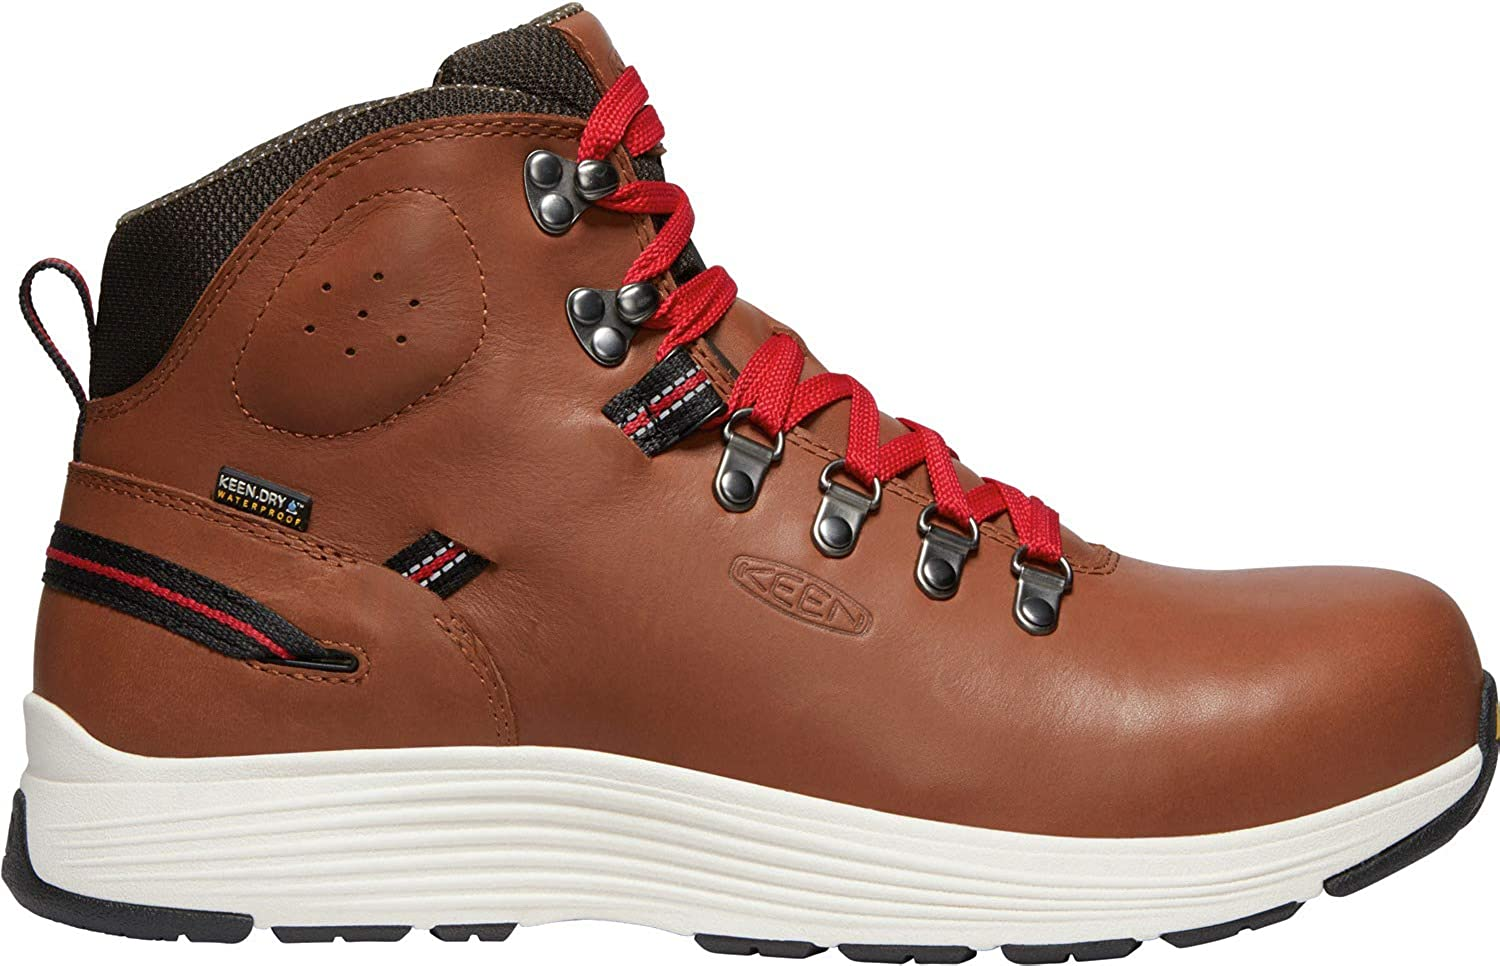 KEEN Utility - Men's CSA Manchester 6'' WP Carbon Fiber Toe Waterproof Work Boots for Maintenance, Transportation, Warehouse and Distribution